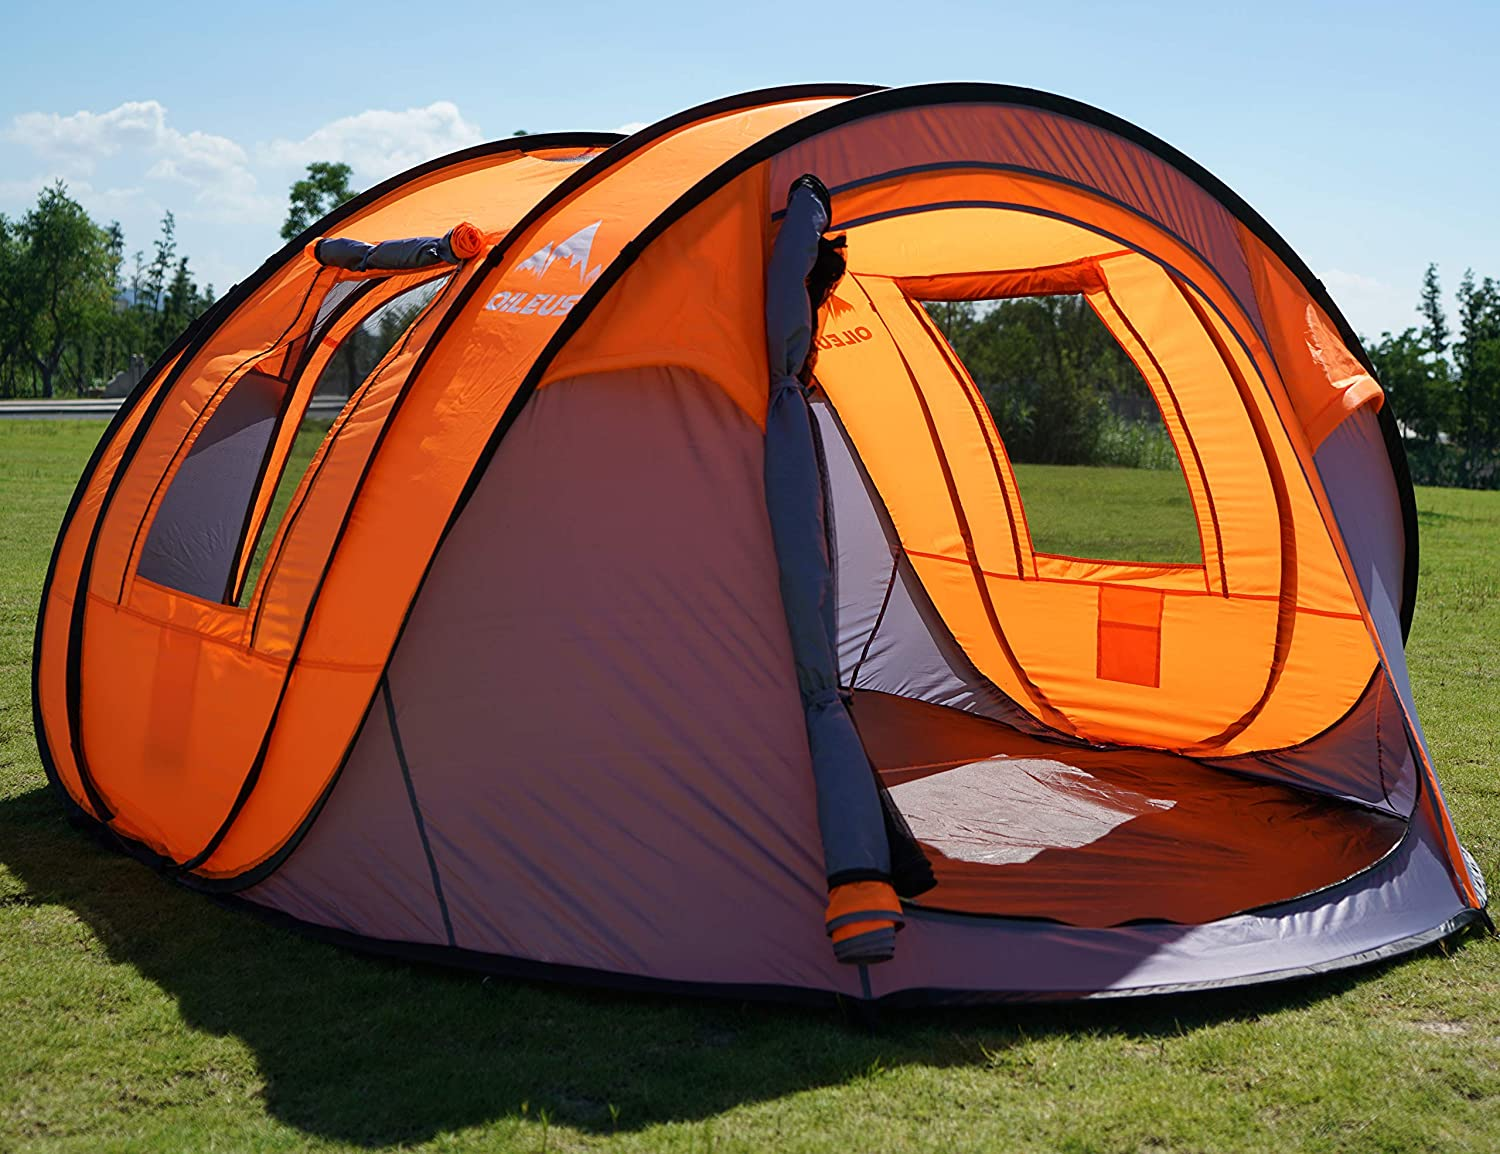 Things you need to know about the family tents for camping!